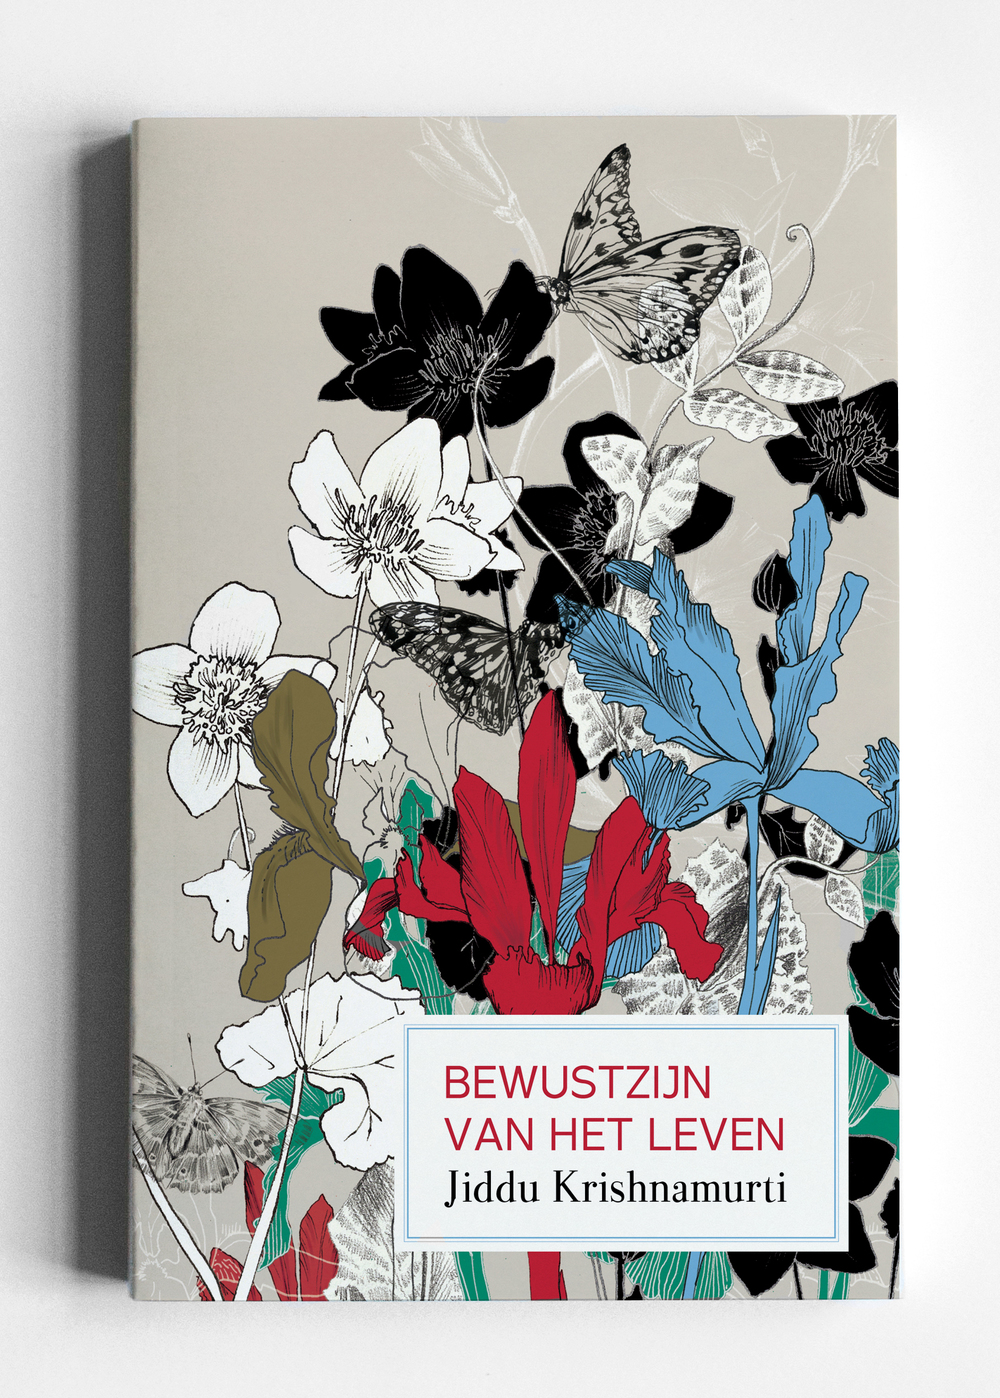 fig 1. Bookcover illustration, layered inky flowers